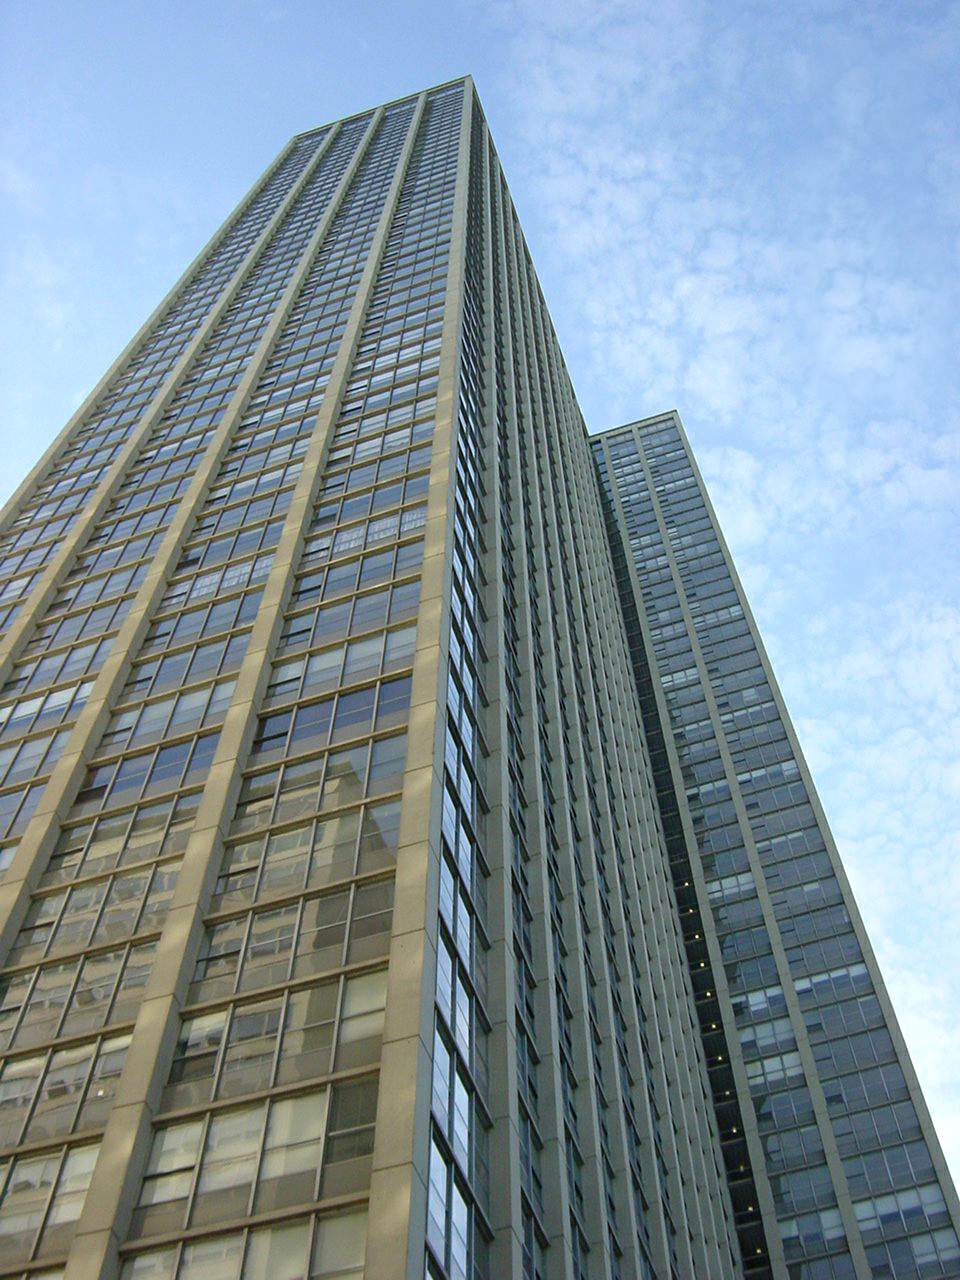 exposed structural concrete skyscraper highrise, ordinance-required exterior facade inspection, repair documents, exterior repair restoration, construction observation administrative services